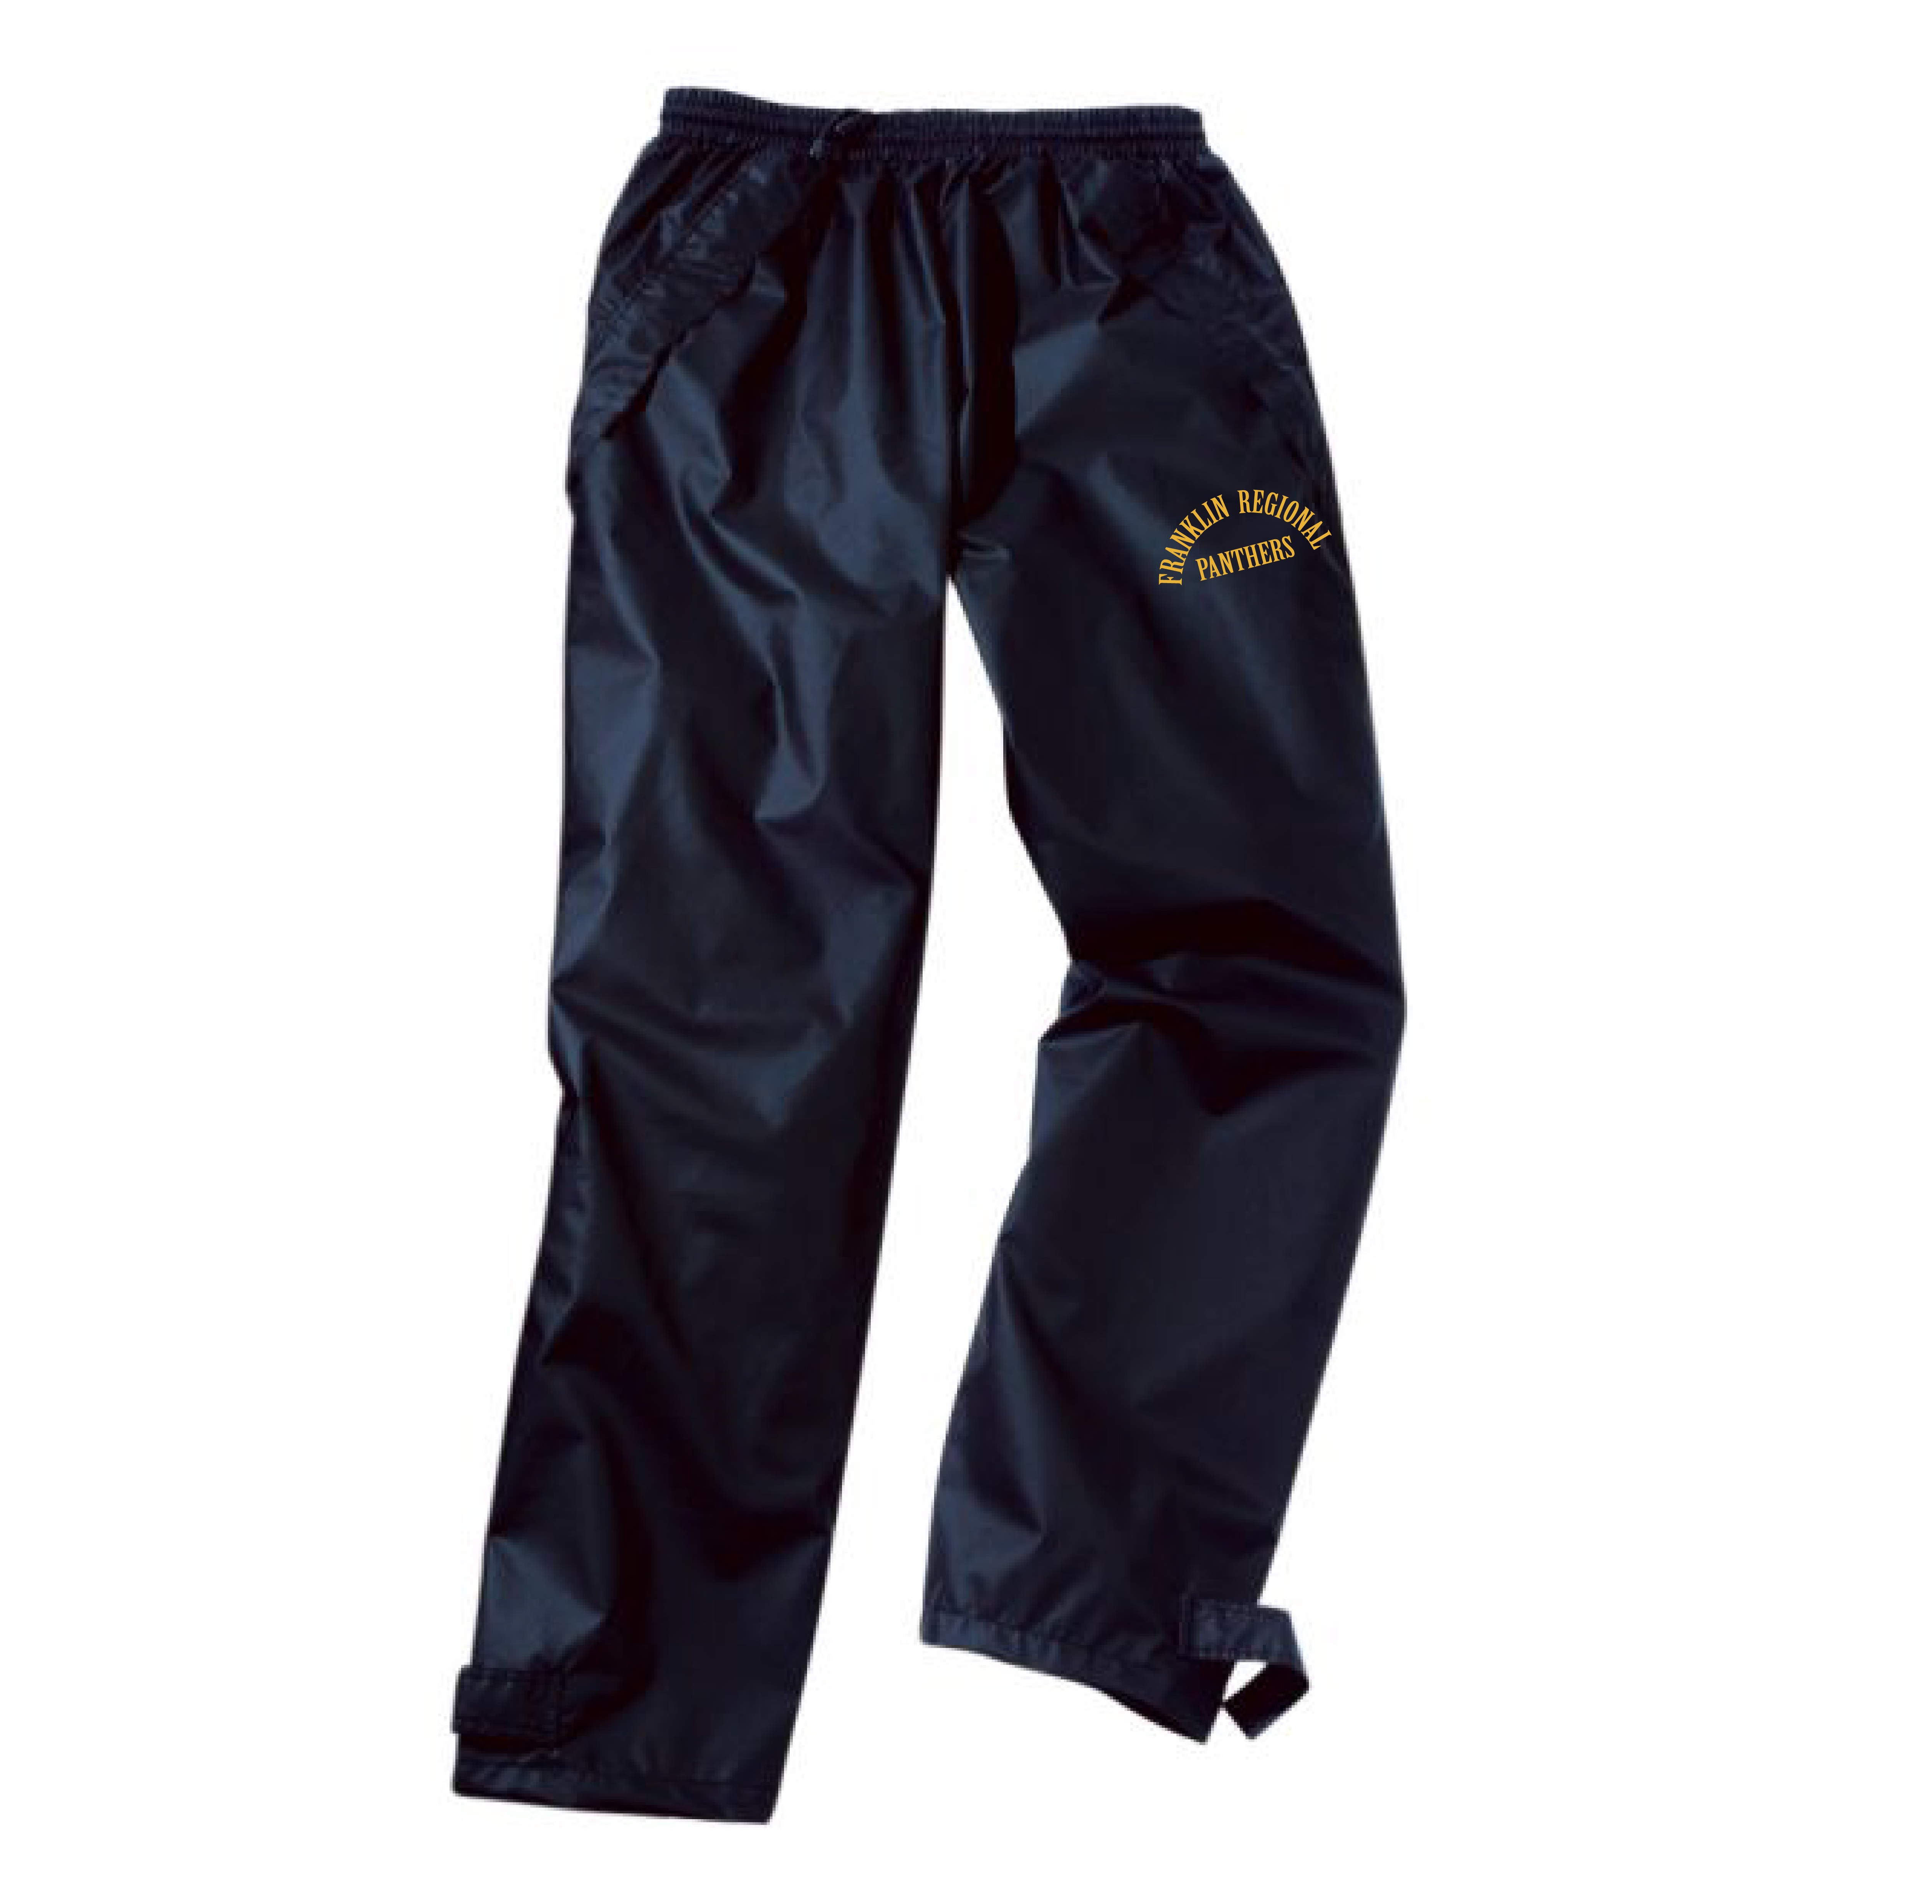 Charles River Embroidered Rain Pants